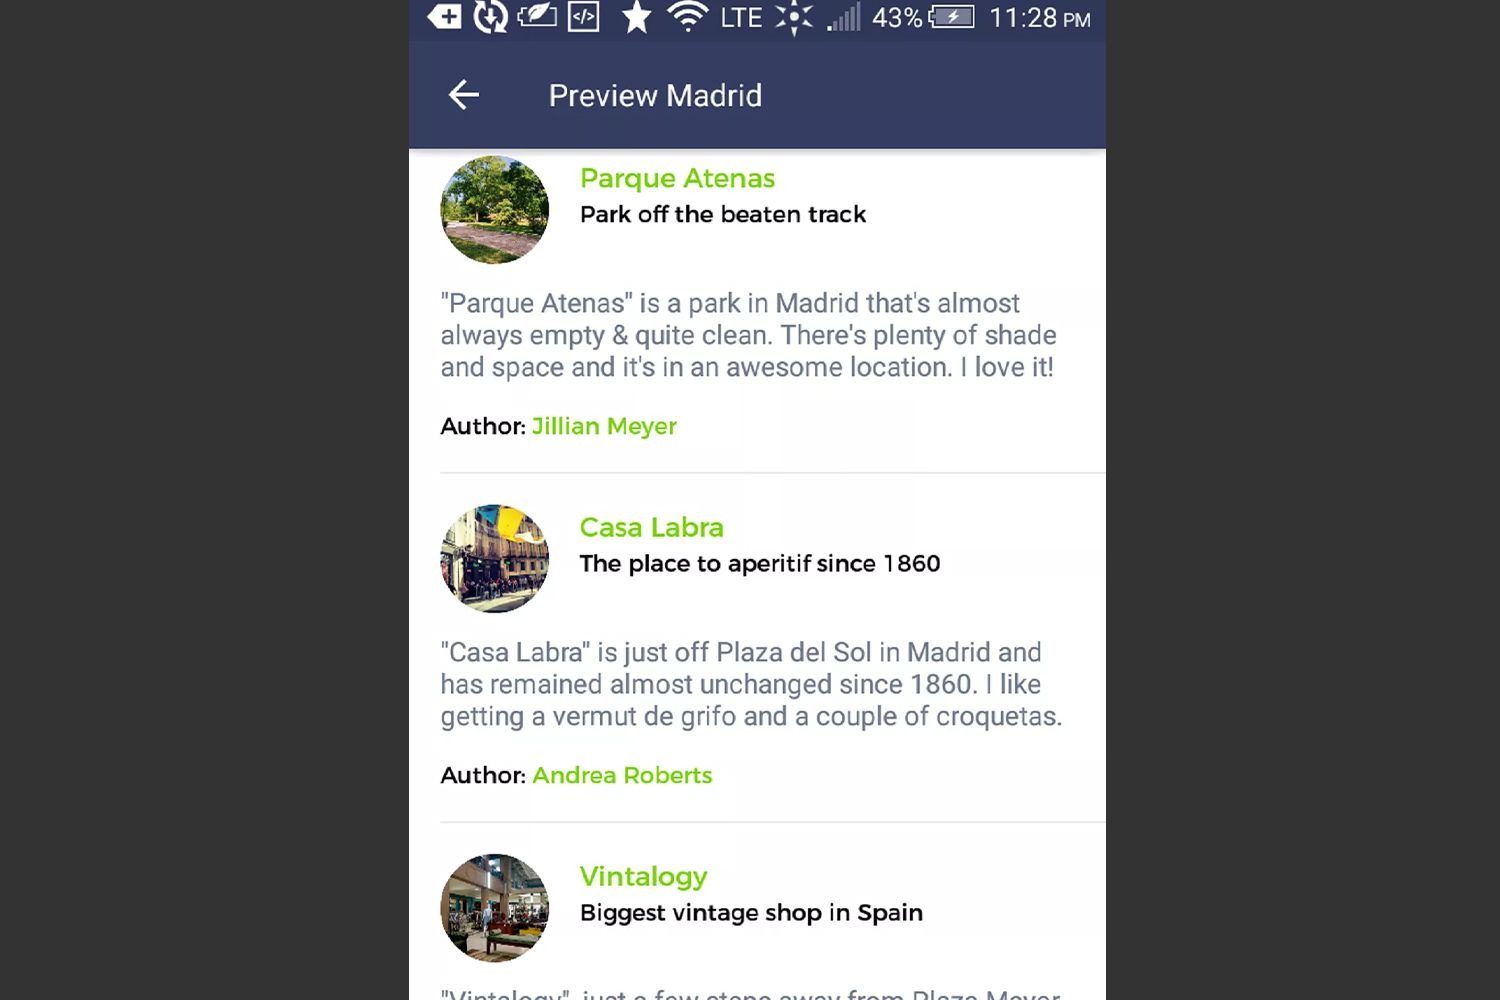 A city guide preview on the Spotted by Locals app